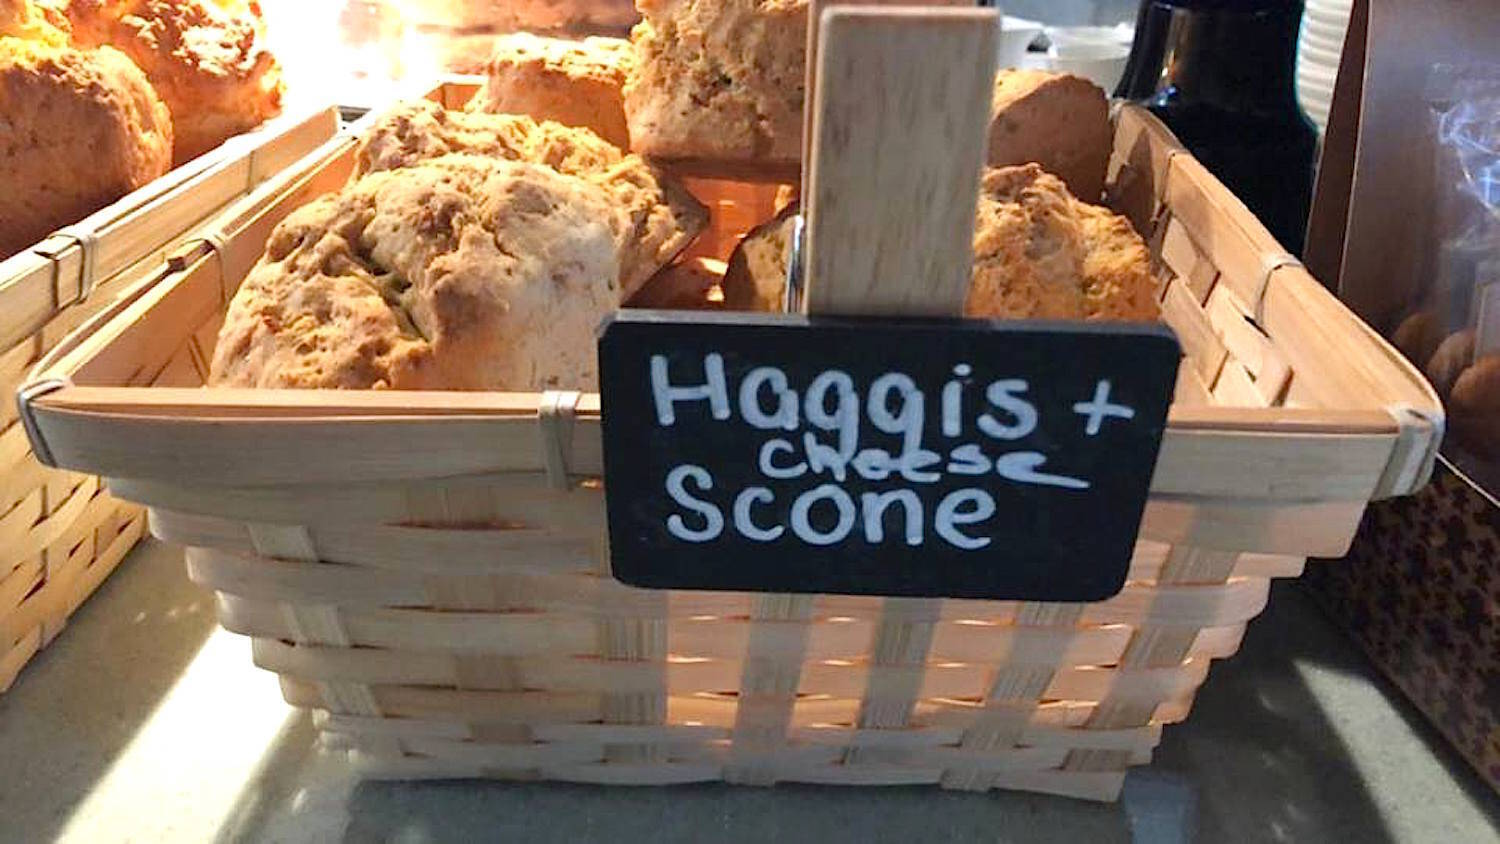 Haggis and cheese scones